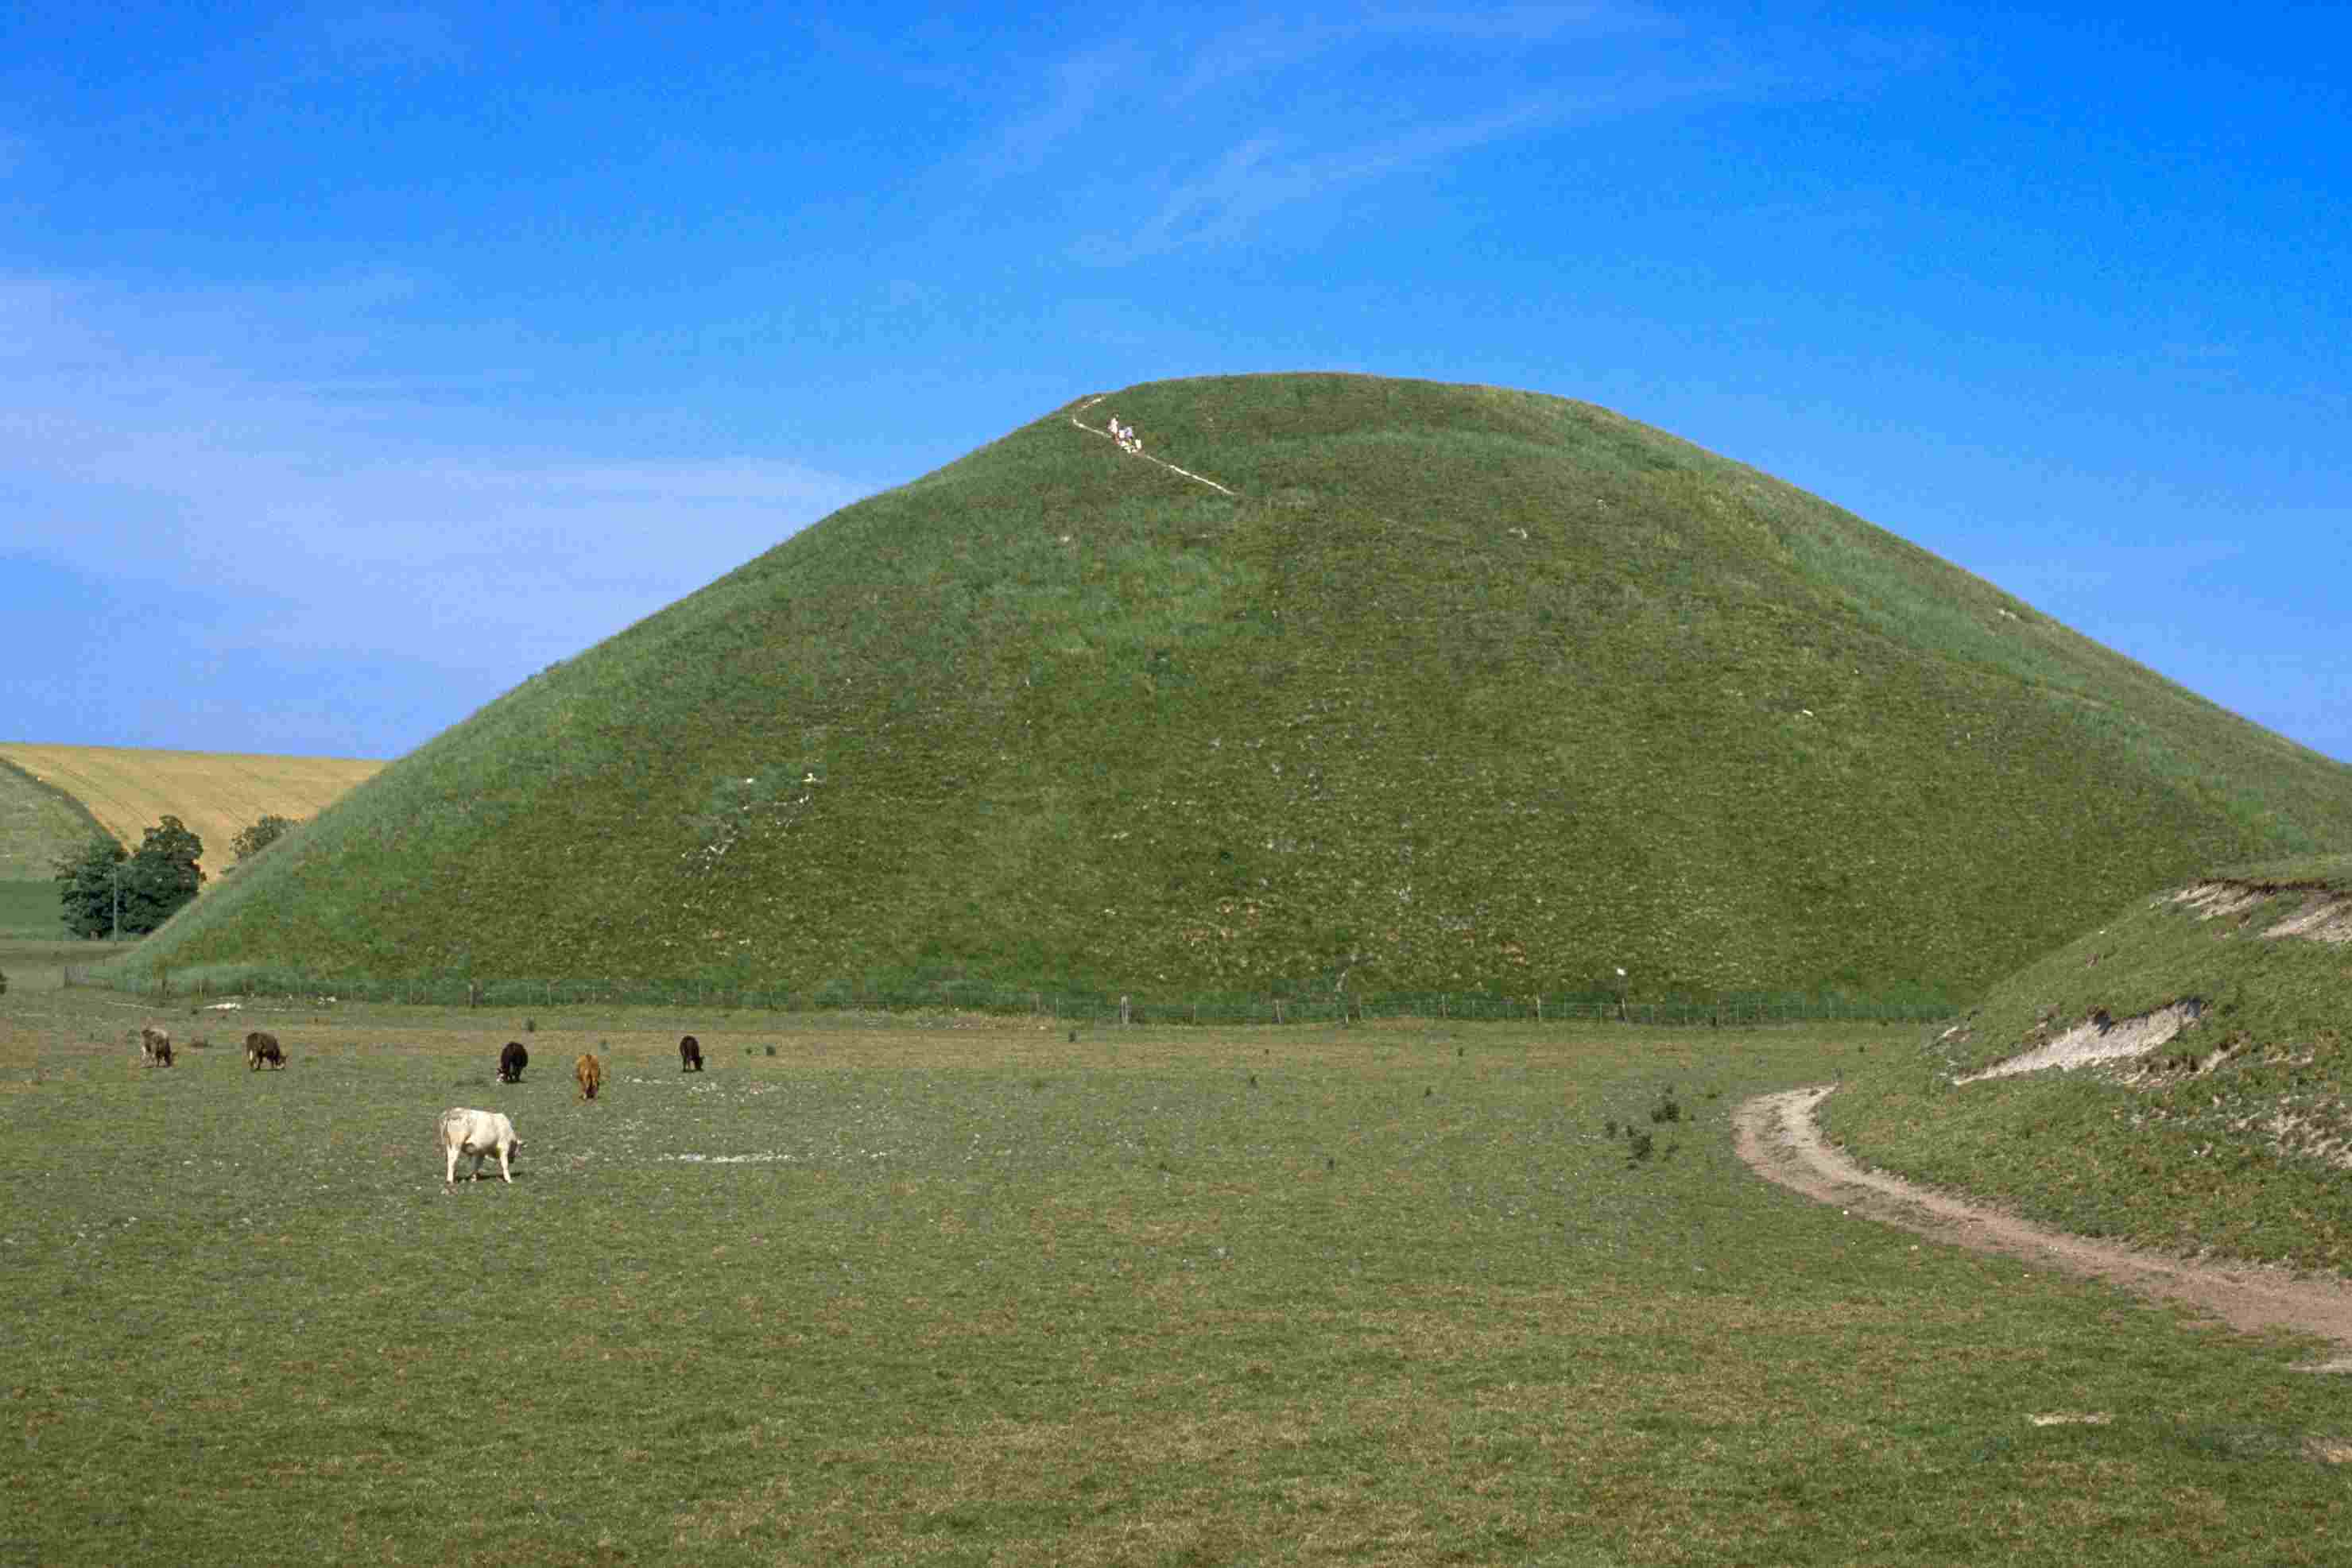 Silbury Hill, a man-made, prehistoric earthworks monument in southern England